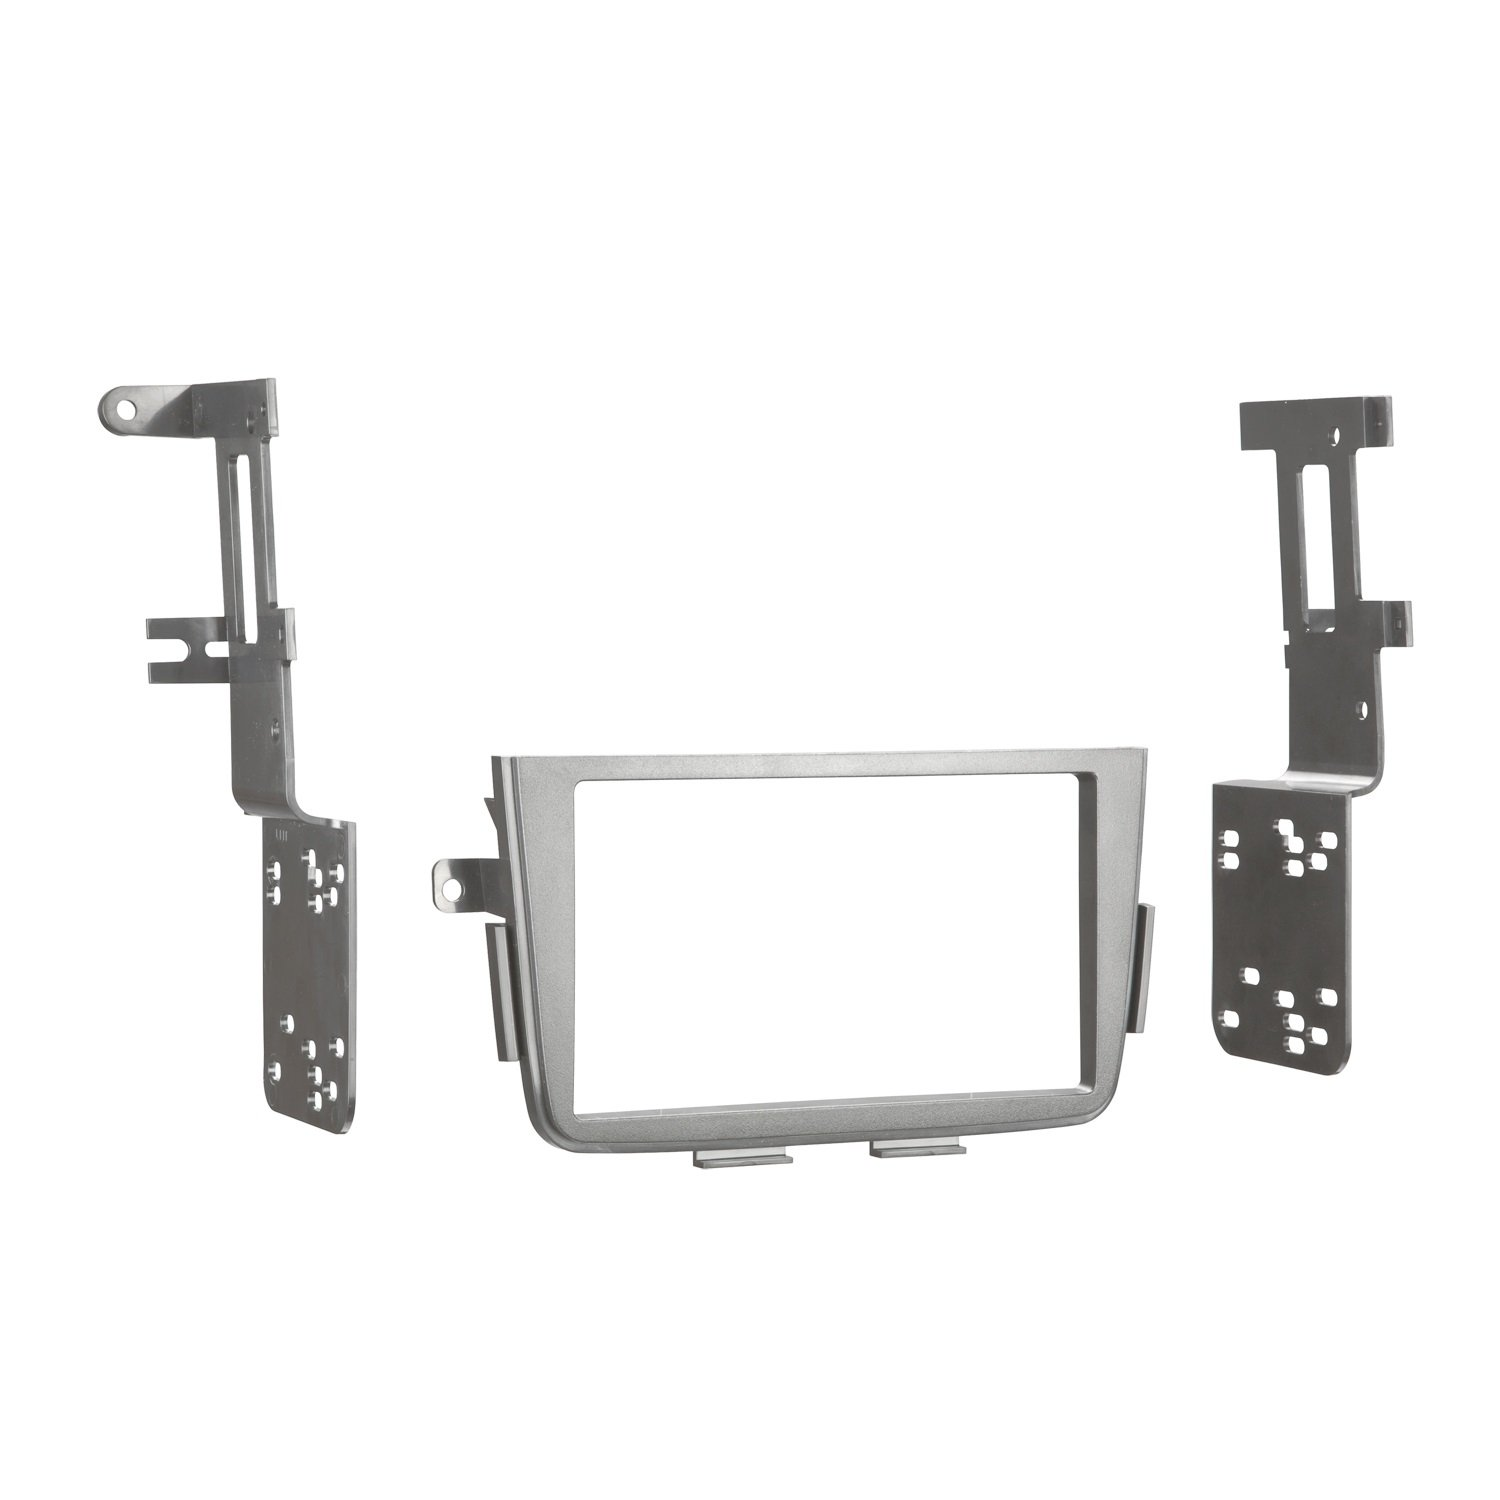 61Lmjo4gxWL._SL1500_ amazon com metra 95 7866b double din installation dash kit for acura mdx wiring harness at gsmx.co